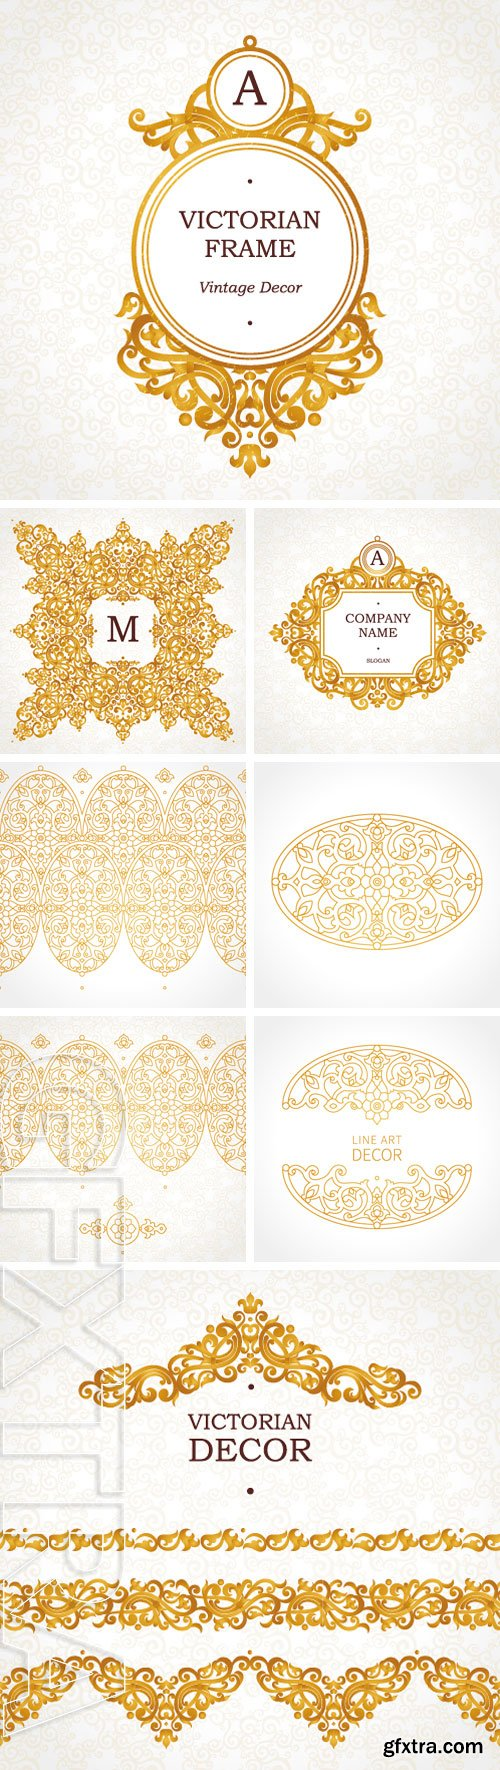 Stock Vectors - Vector ornate seamless borders in Victorian style. Element for design, place for text. Traditional golden decor